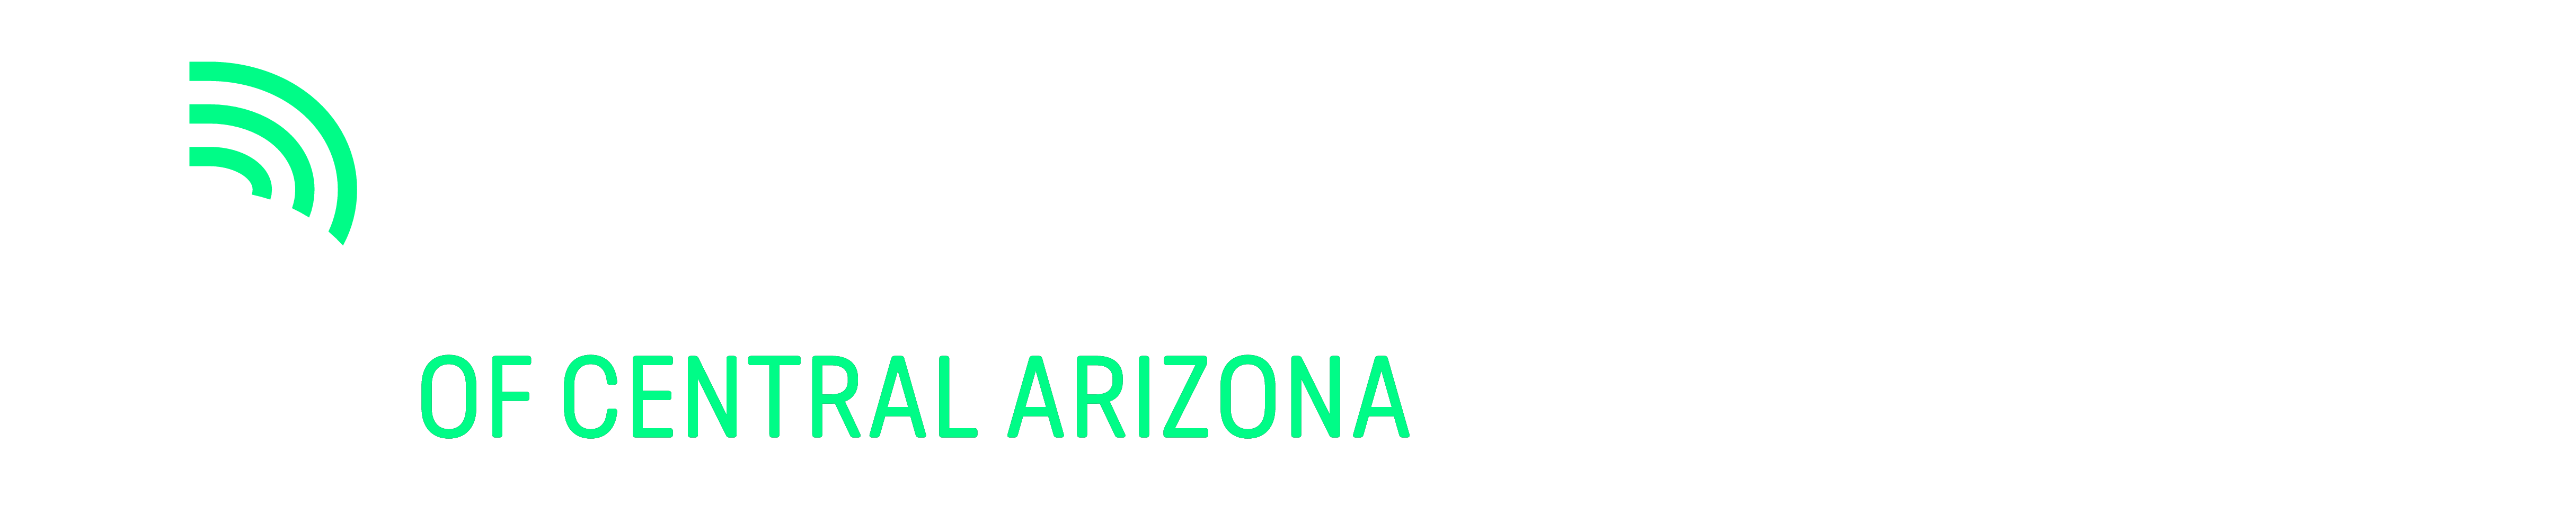 Big Brothers Big Sisters of Central Arizona's White Horizontal Logo